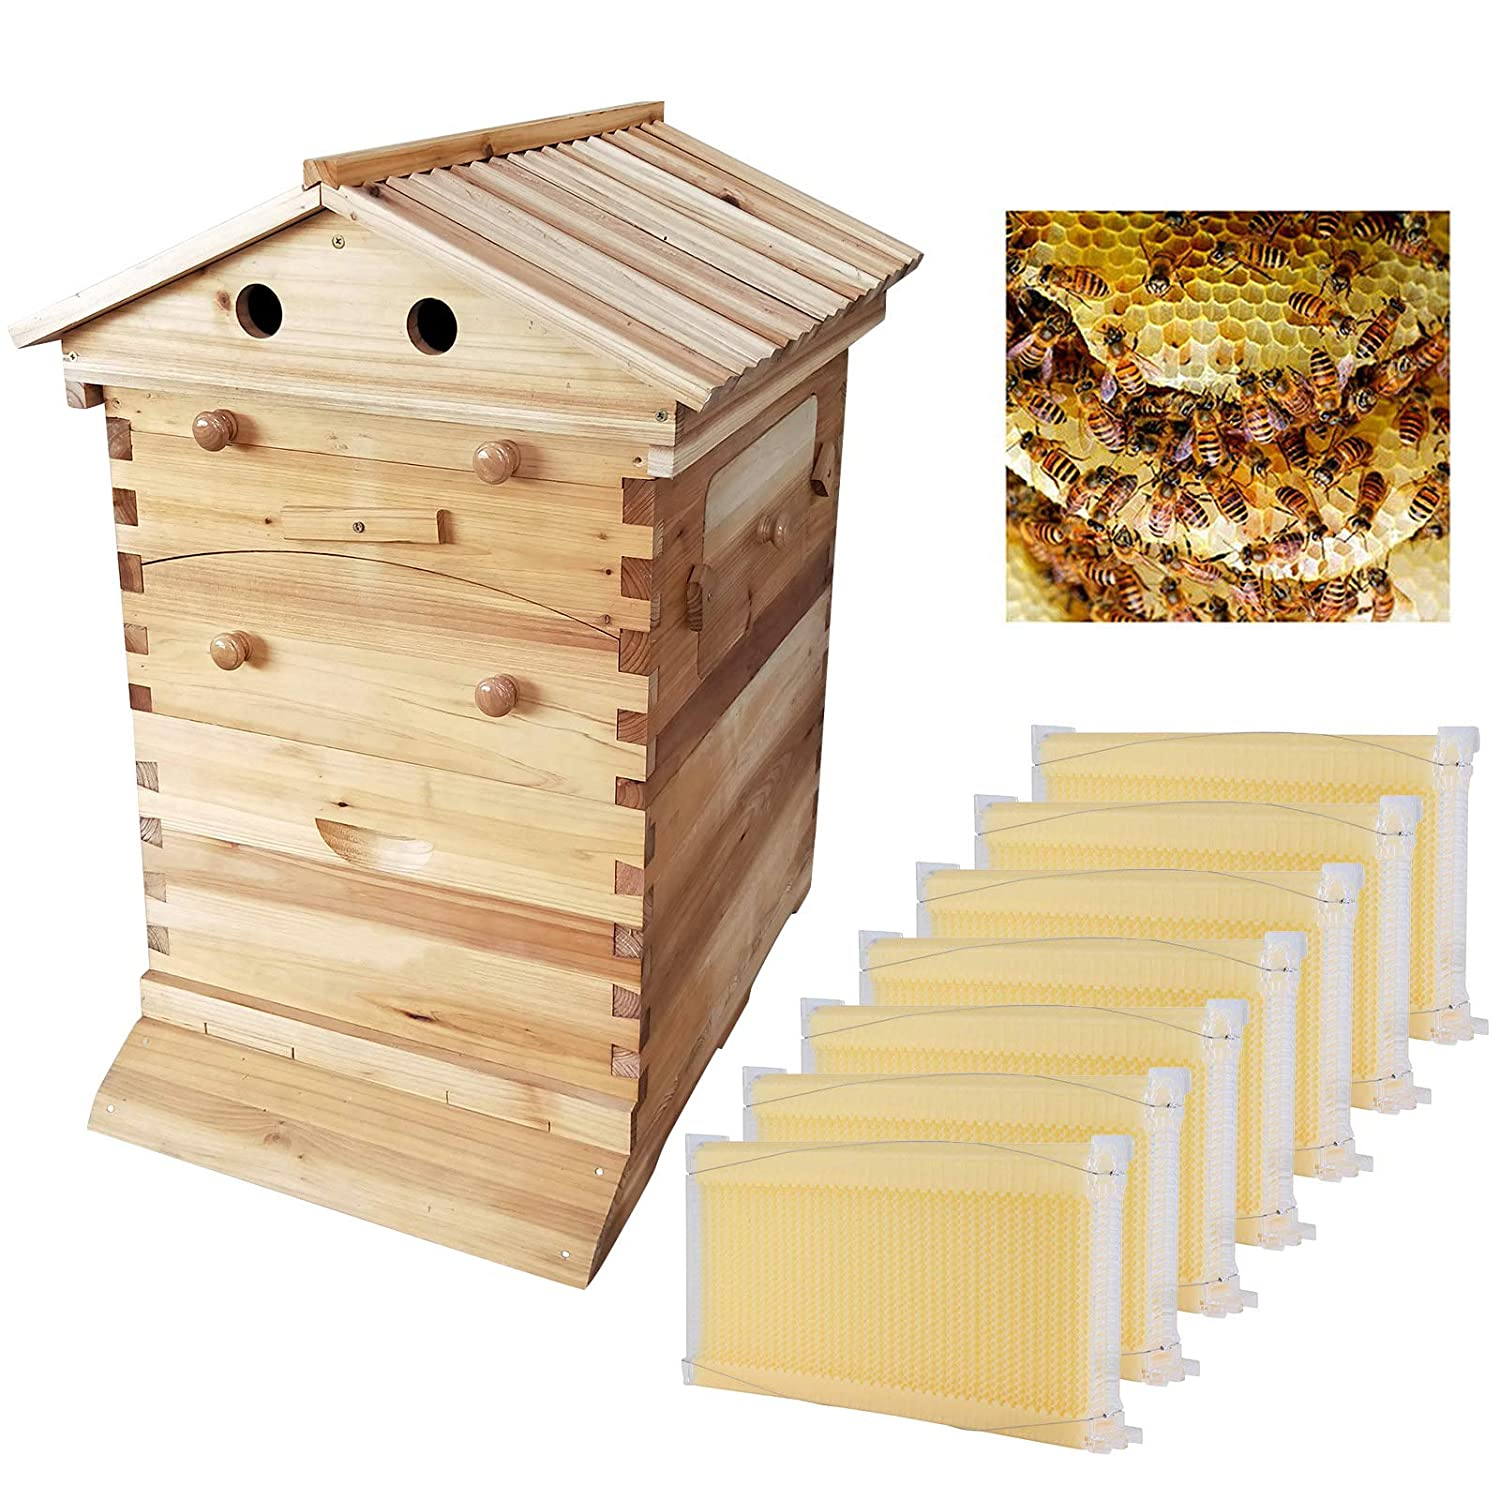 Auto Honey Hive Beehive Frames + Beekeeping Wooden House Beehive Boxes -7Pcs Auto Beehive Frame Comb - Bee Hive Boxes - for Beekeepers Food Grade BPA (Beehive Frame+Wooden Box)